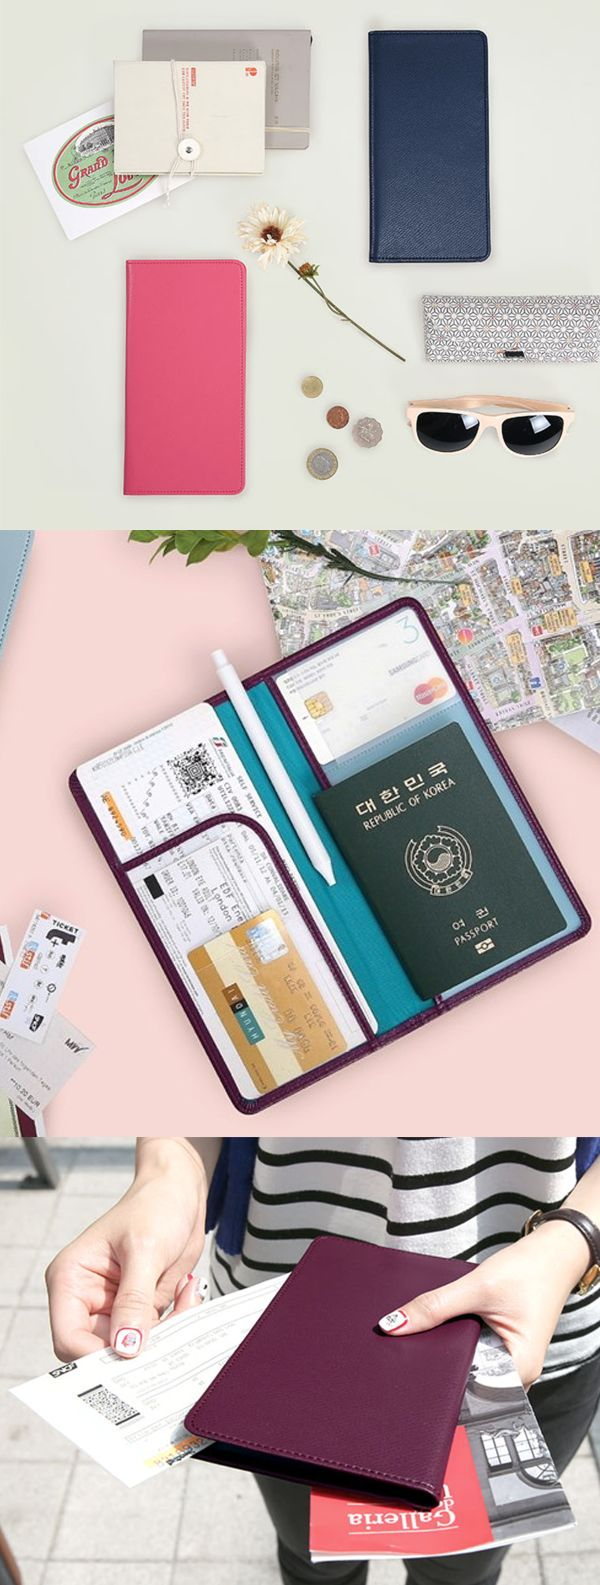 You will be able to carry your passport, a pen, cards and tickets all together for a great convenience! This reliable passport wallet also keeps your informations safely with RFID protection. With quality material and a clean design, it is a classy must-have item for your travel!